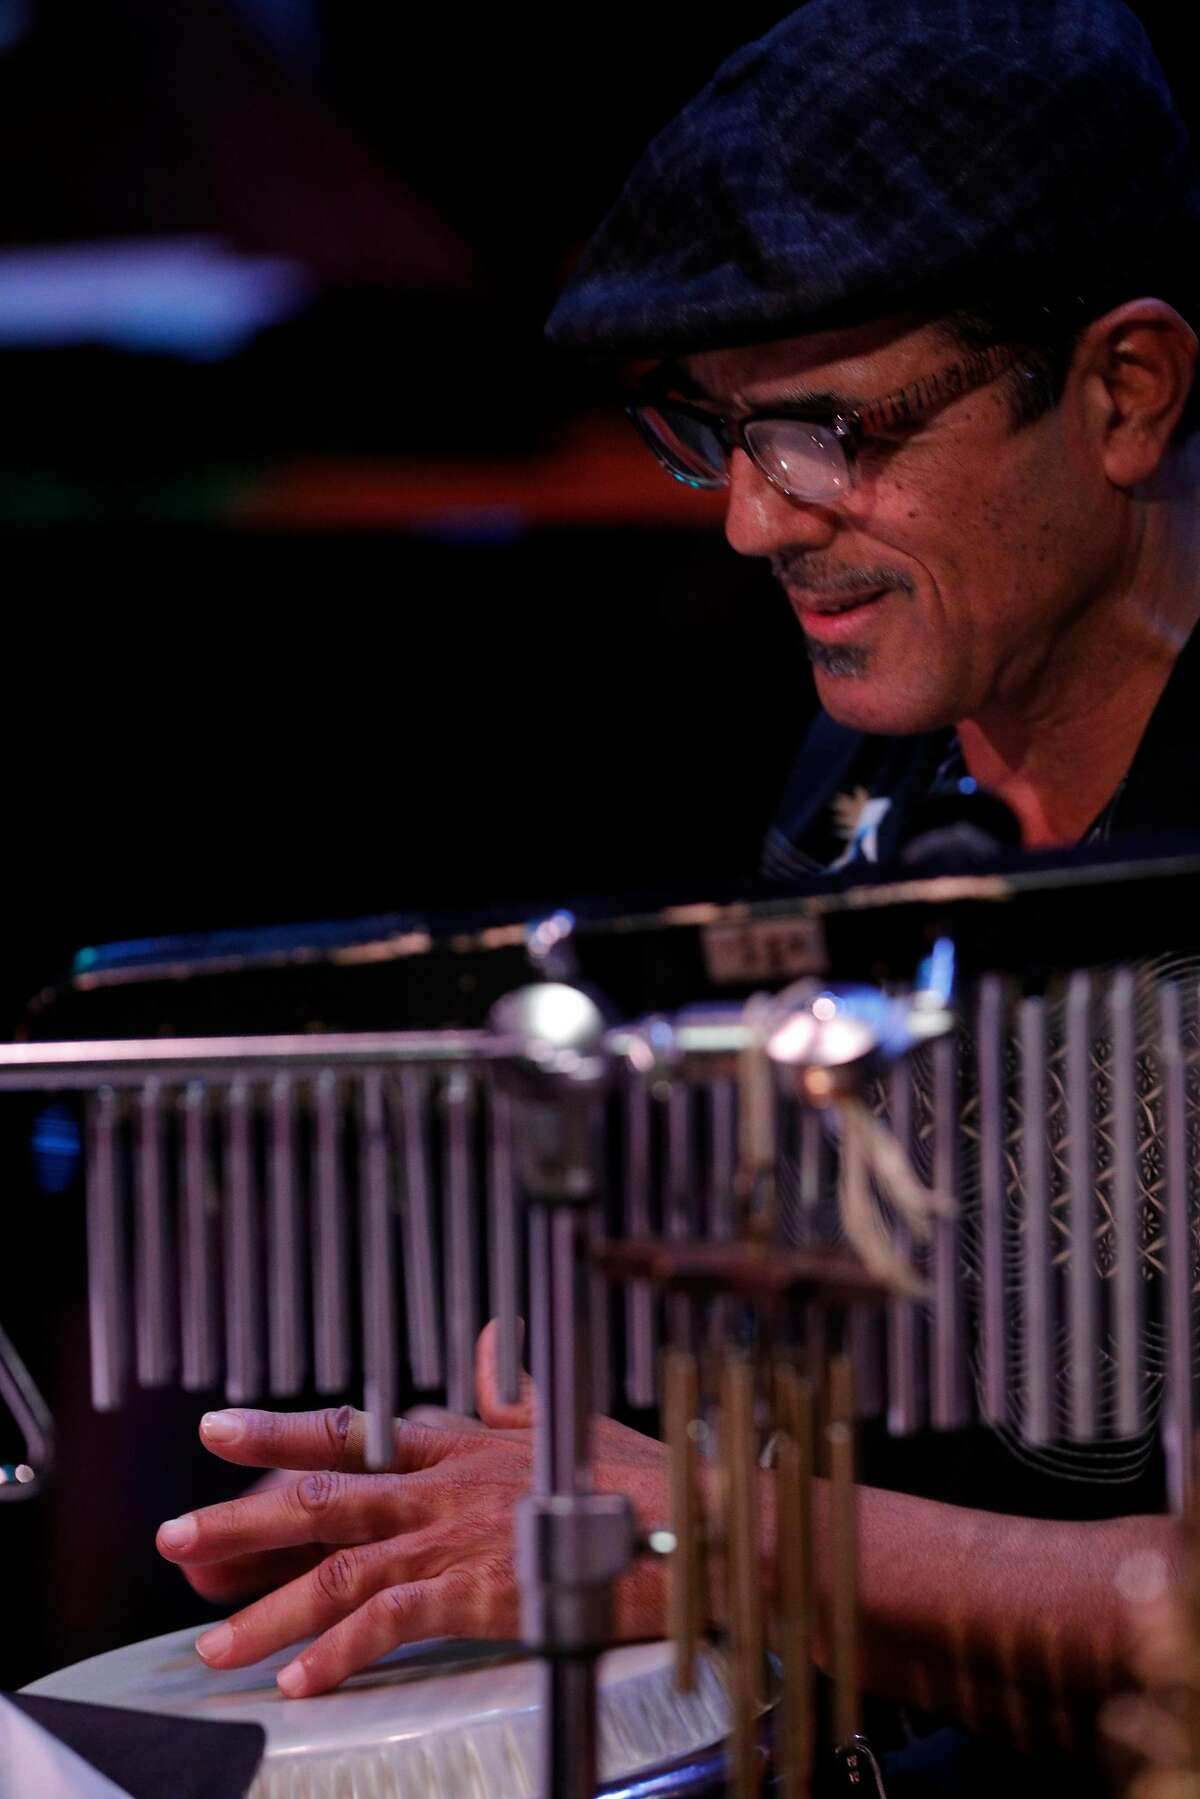 Percussionist John Santos plays with Electric Squeezebox Orchestra during the Cal Jazz Conservatory Fiddler Annex grand opening week final concert in Berkeley, Calif., on Sunday, March 4, 2018. The concert featured the Electric Squeezebox Orchestra, a 17-piece big band led by Erik Jekabson and special guest percussionist John Santos as well as the Cosmic Conquerors, a 14-piece big band, led by Isaiah Hammer.